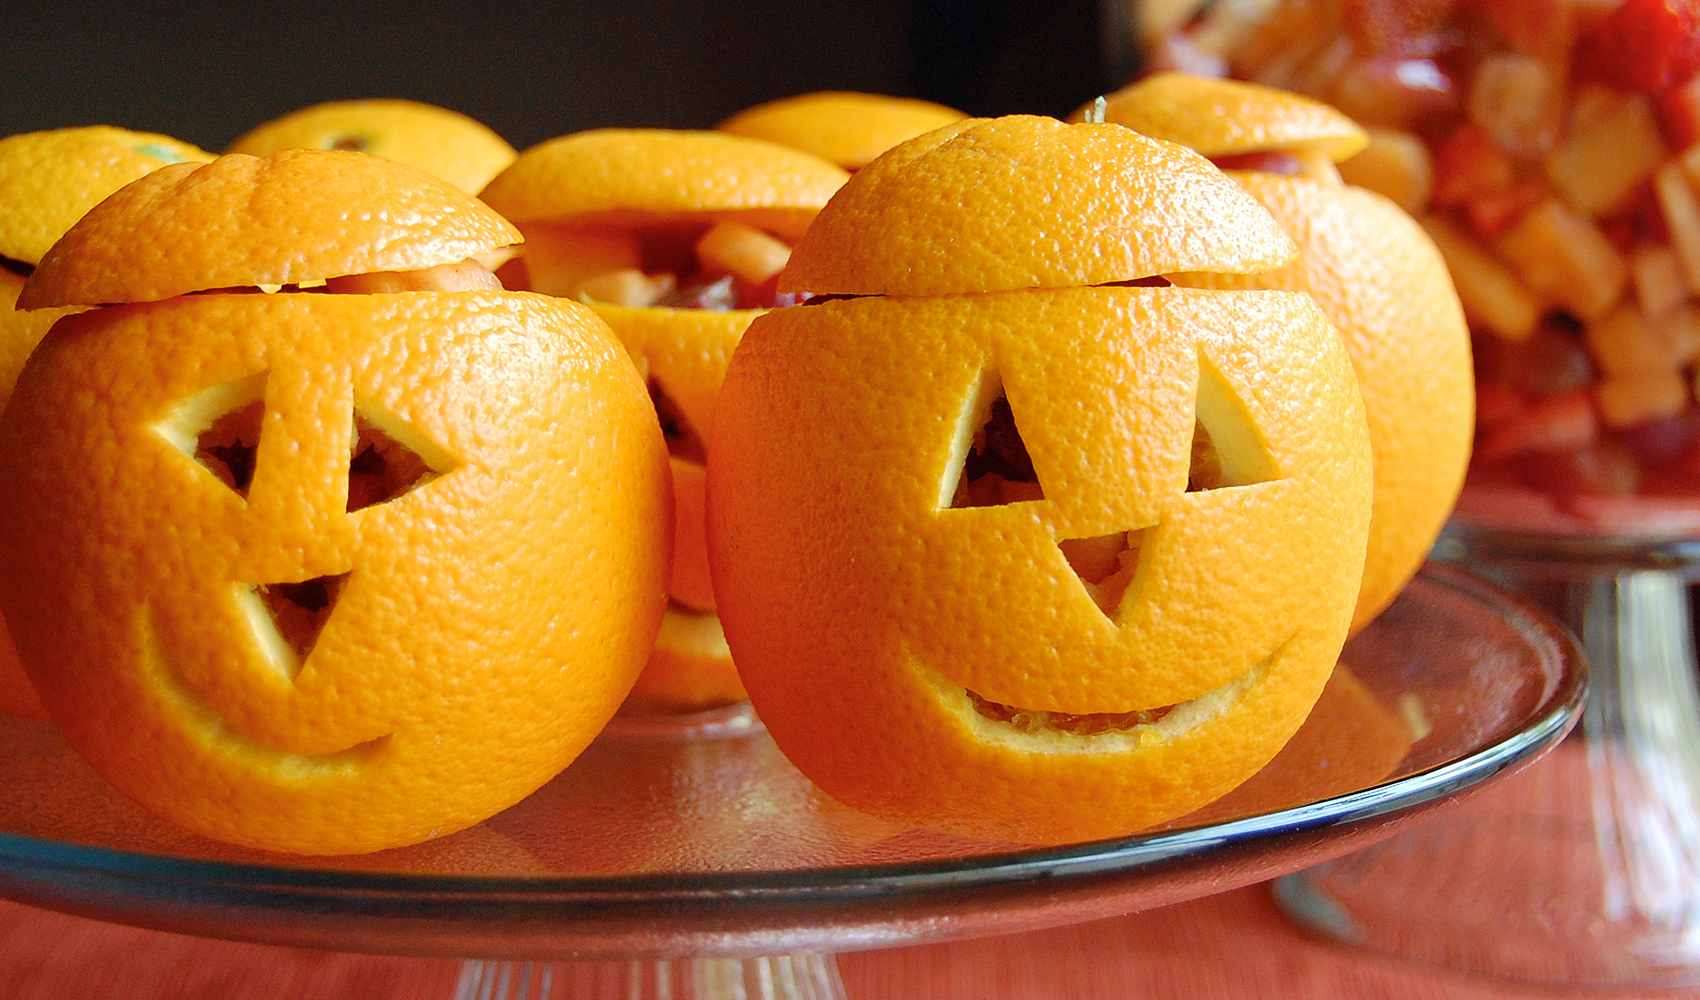 Snack O' Lantern Fruit Cups